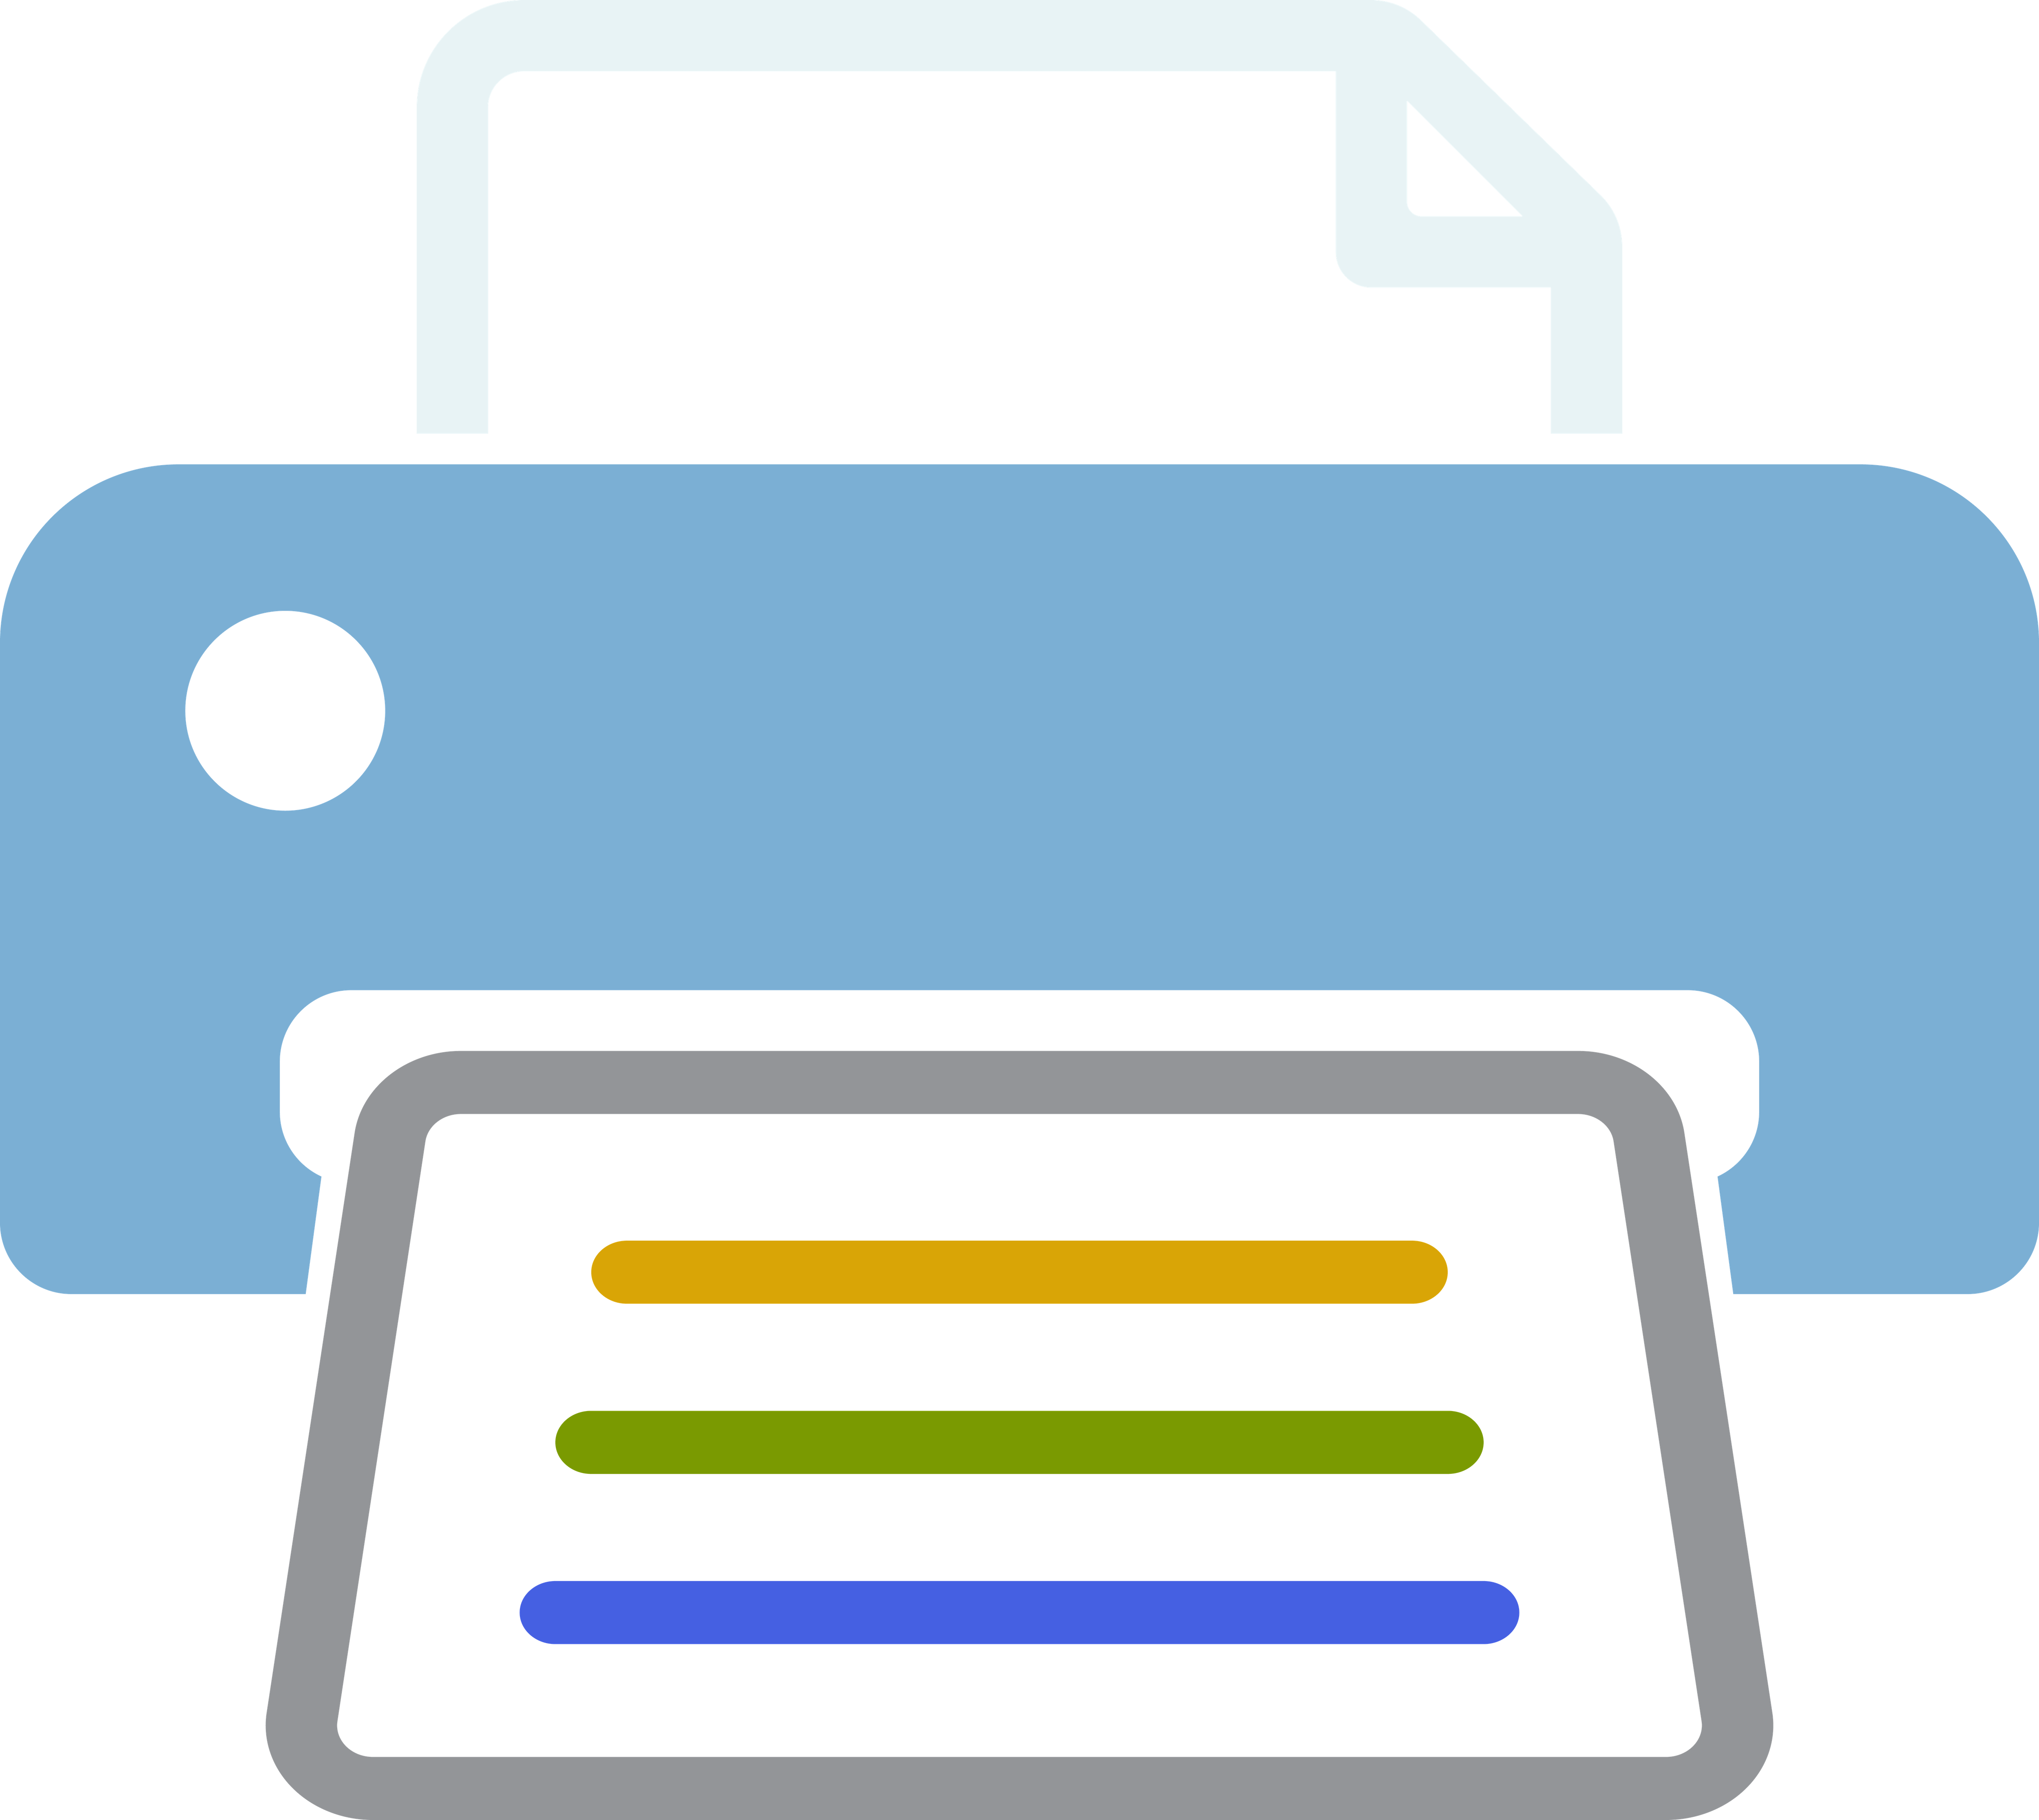 graphical icon of a printer